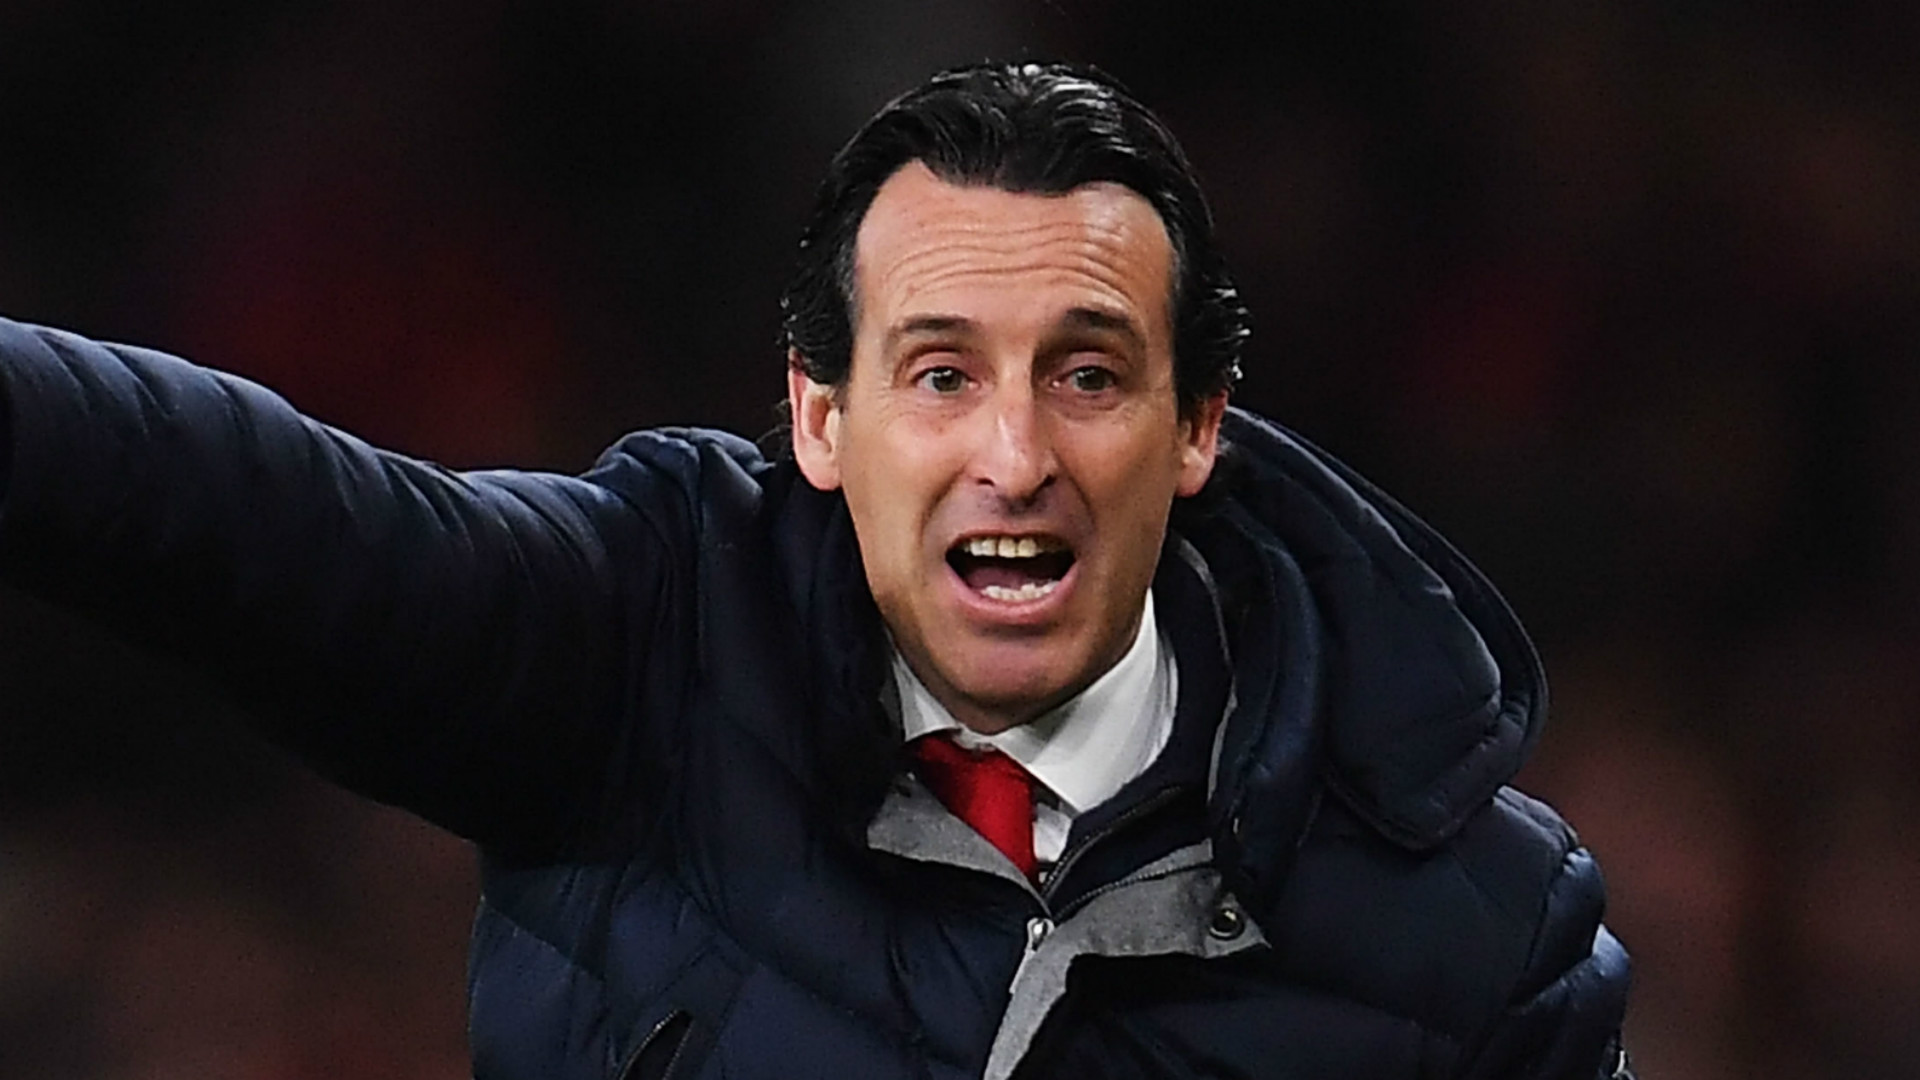 Unai Emery sought advice from Javi Gracia before taking Arsenal job